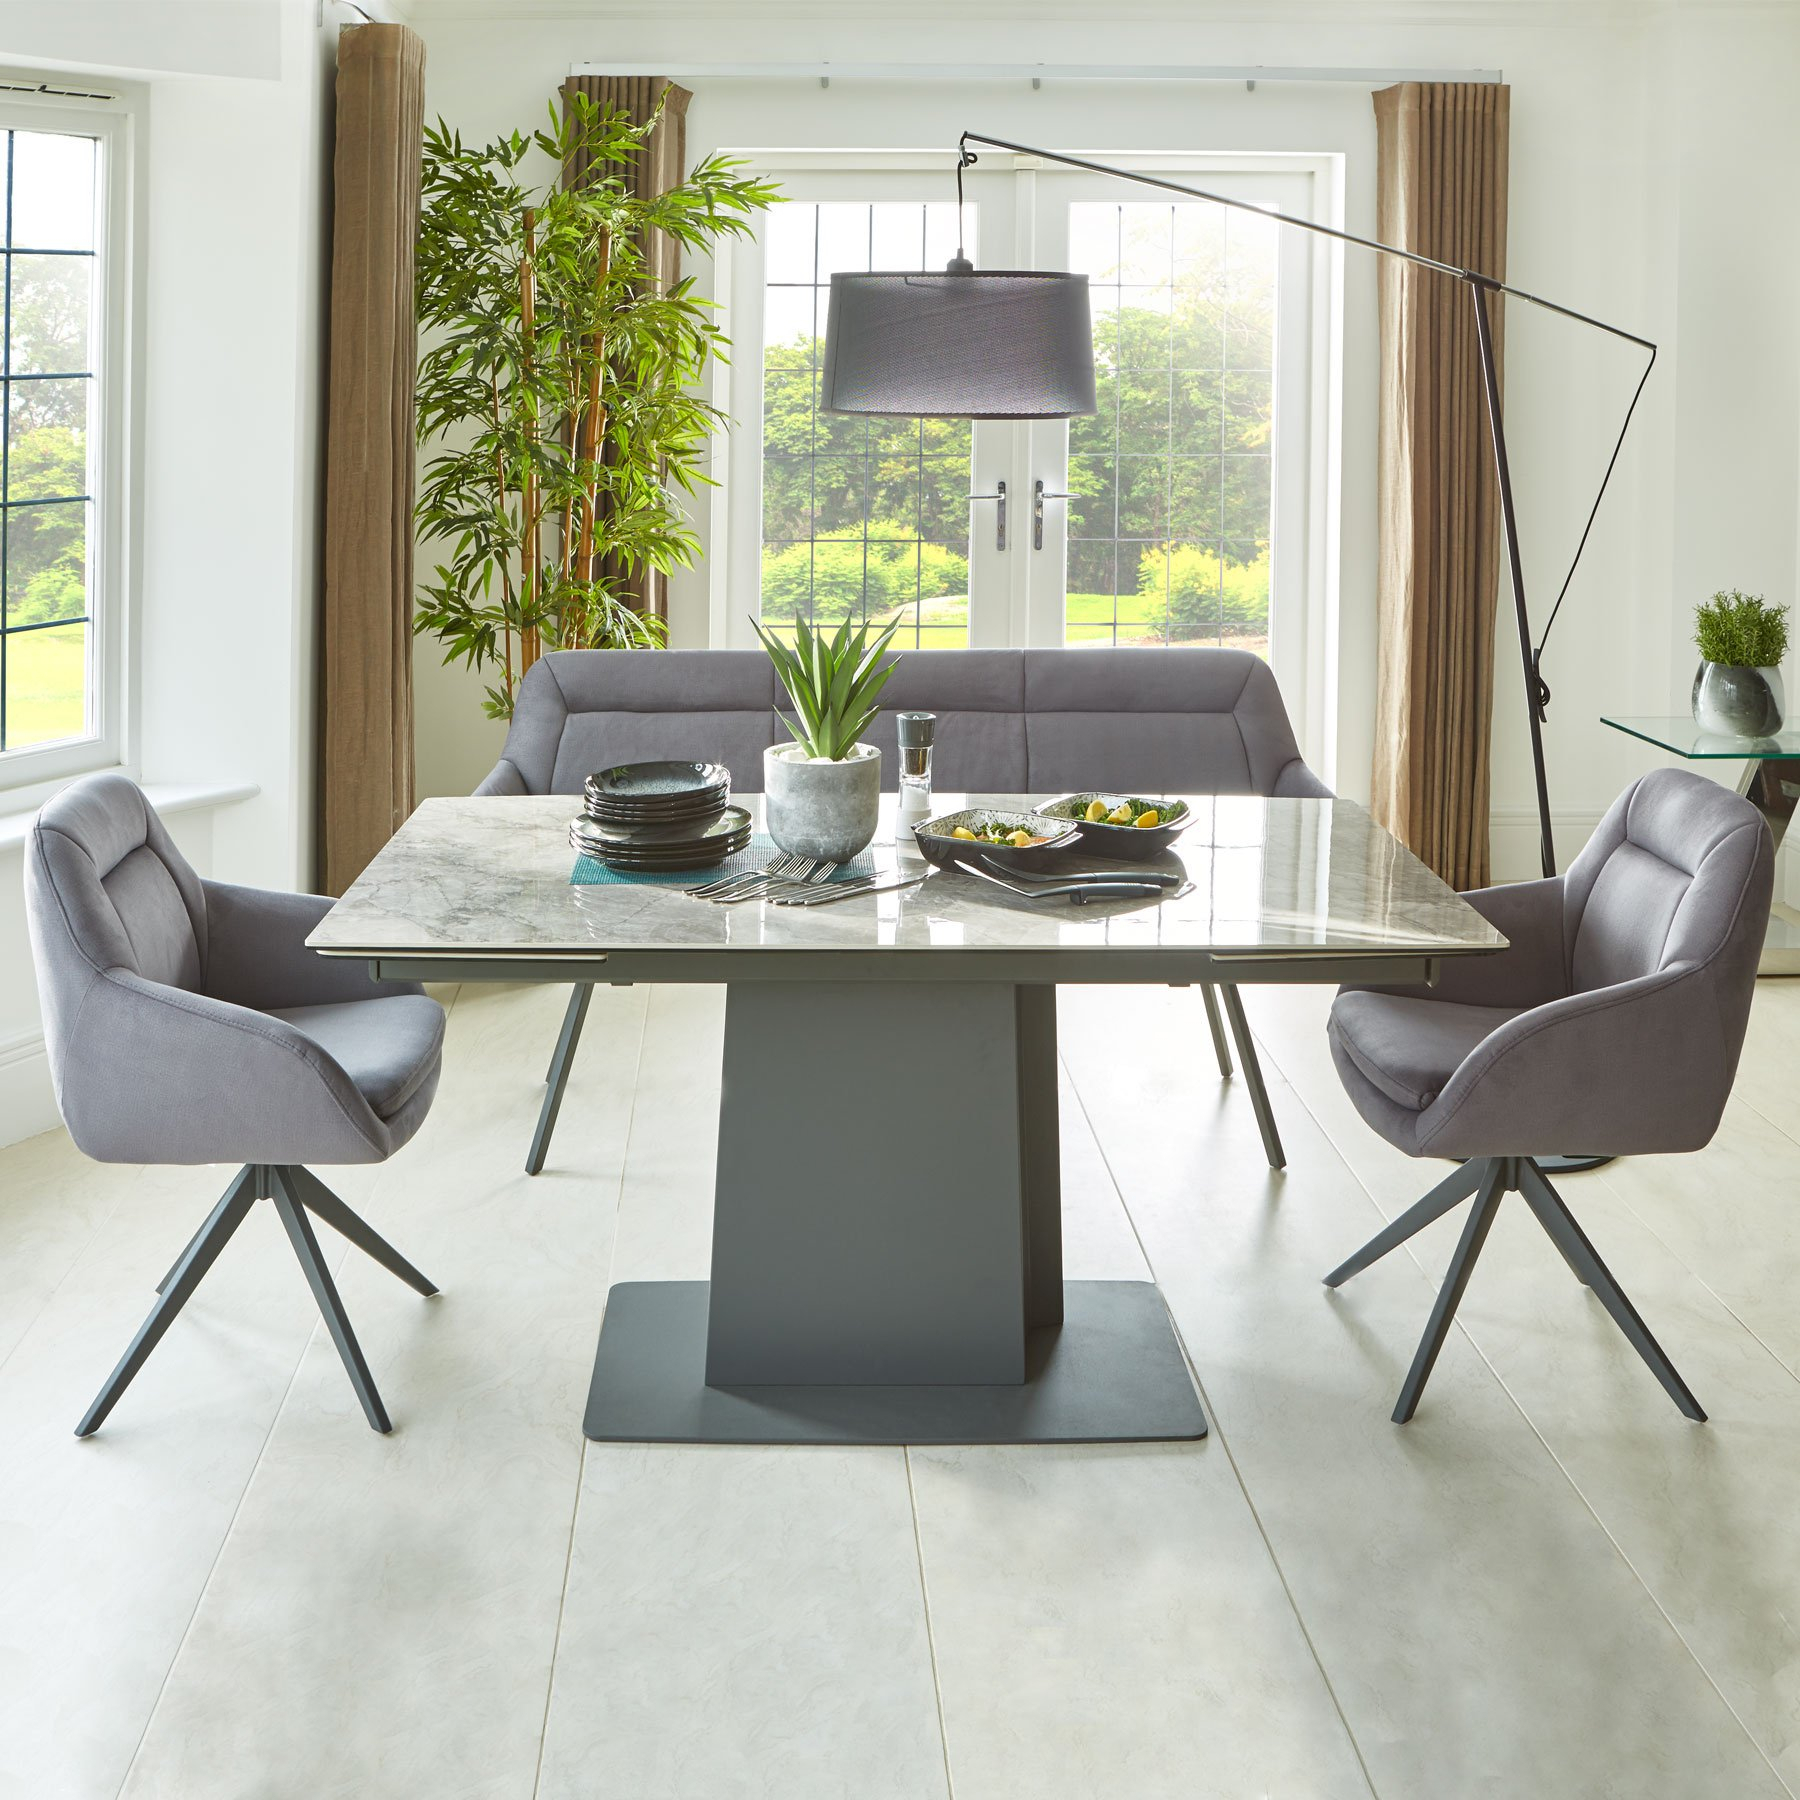 Ideas About Extending Dining Bench, – Howellmagic Dining Intended For Recent Faye Extending Dining Tables (View 5 of 25)